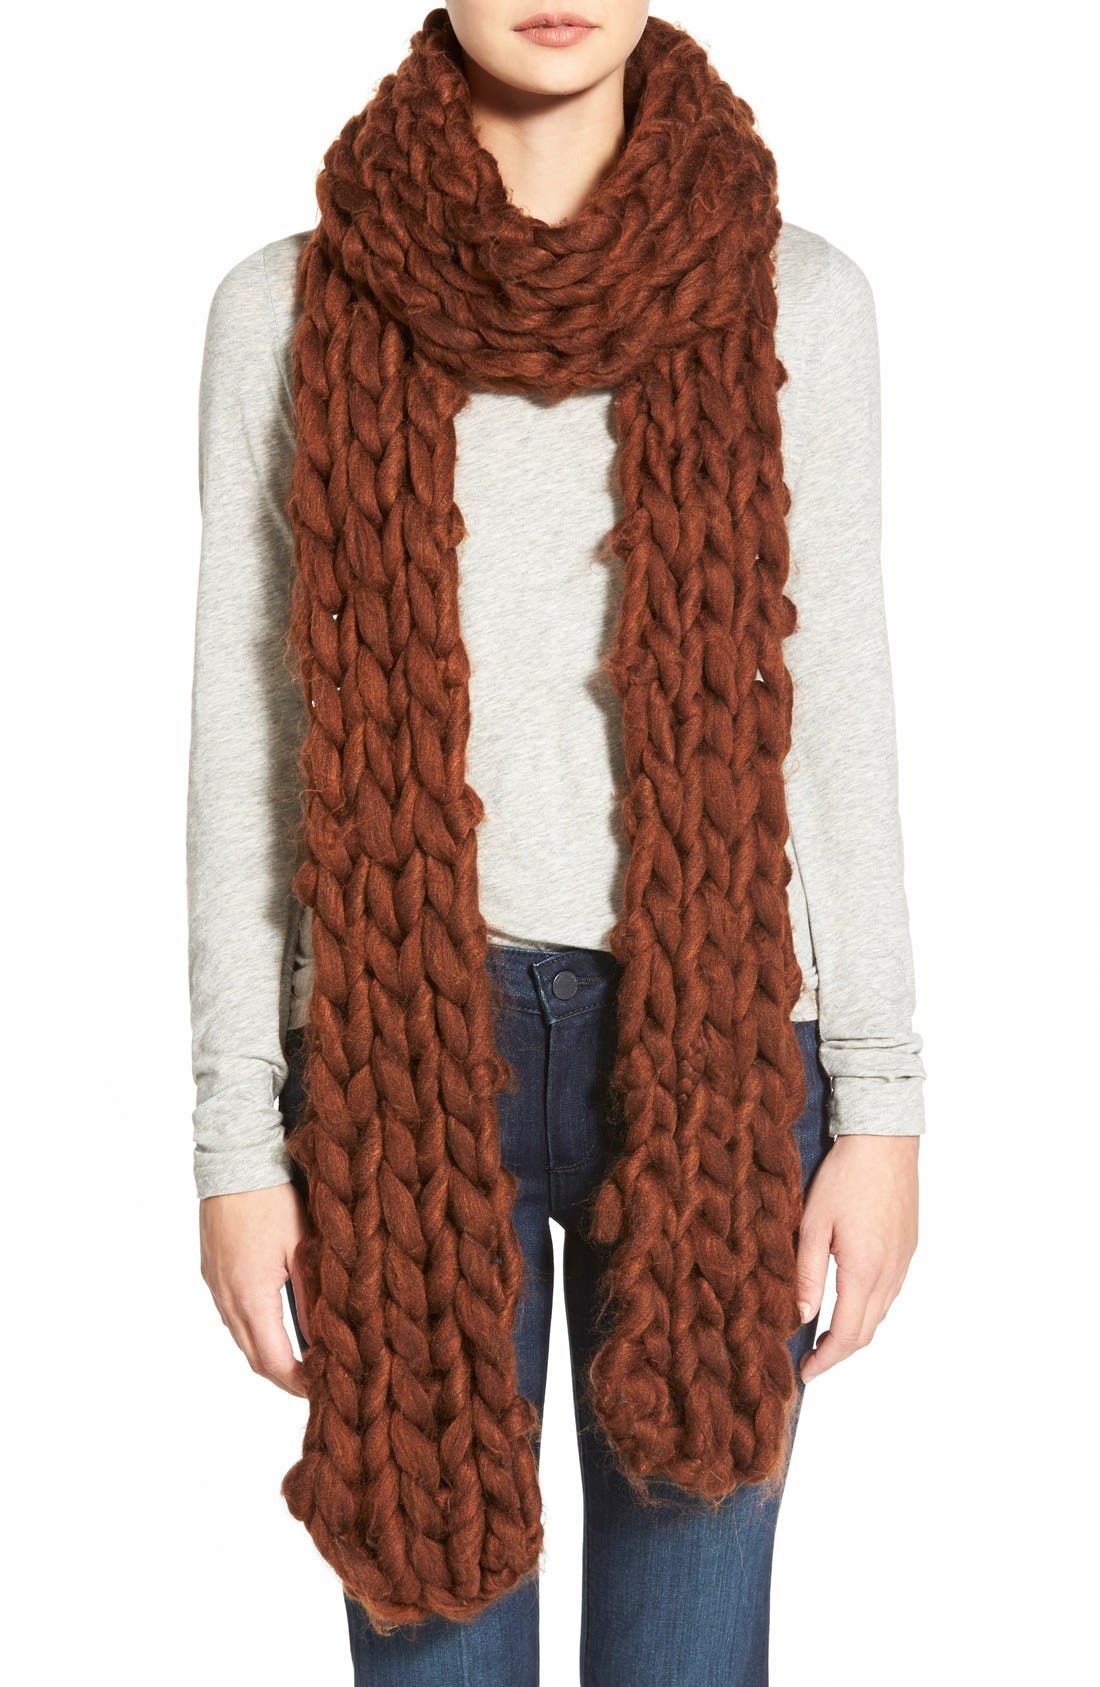 FREE PEOPLE Chunky Knit Scarf, Main, color, 200